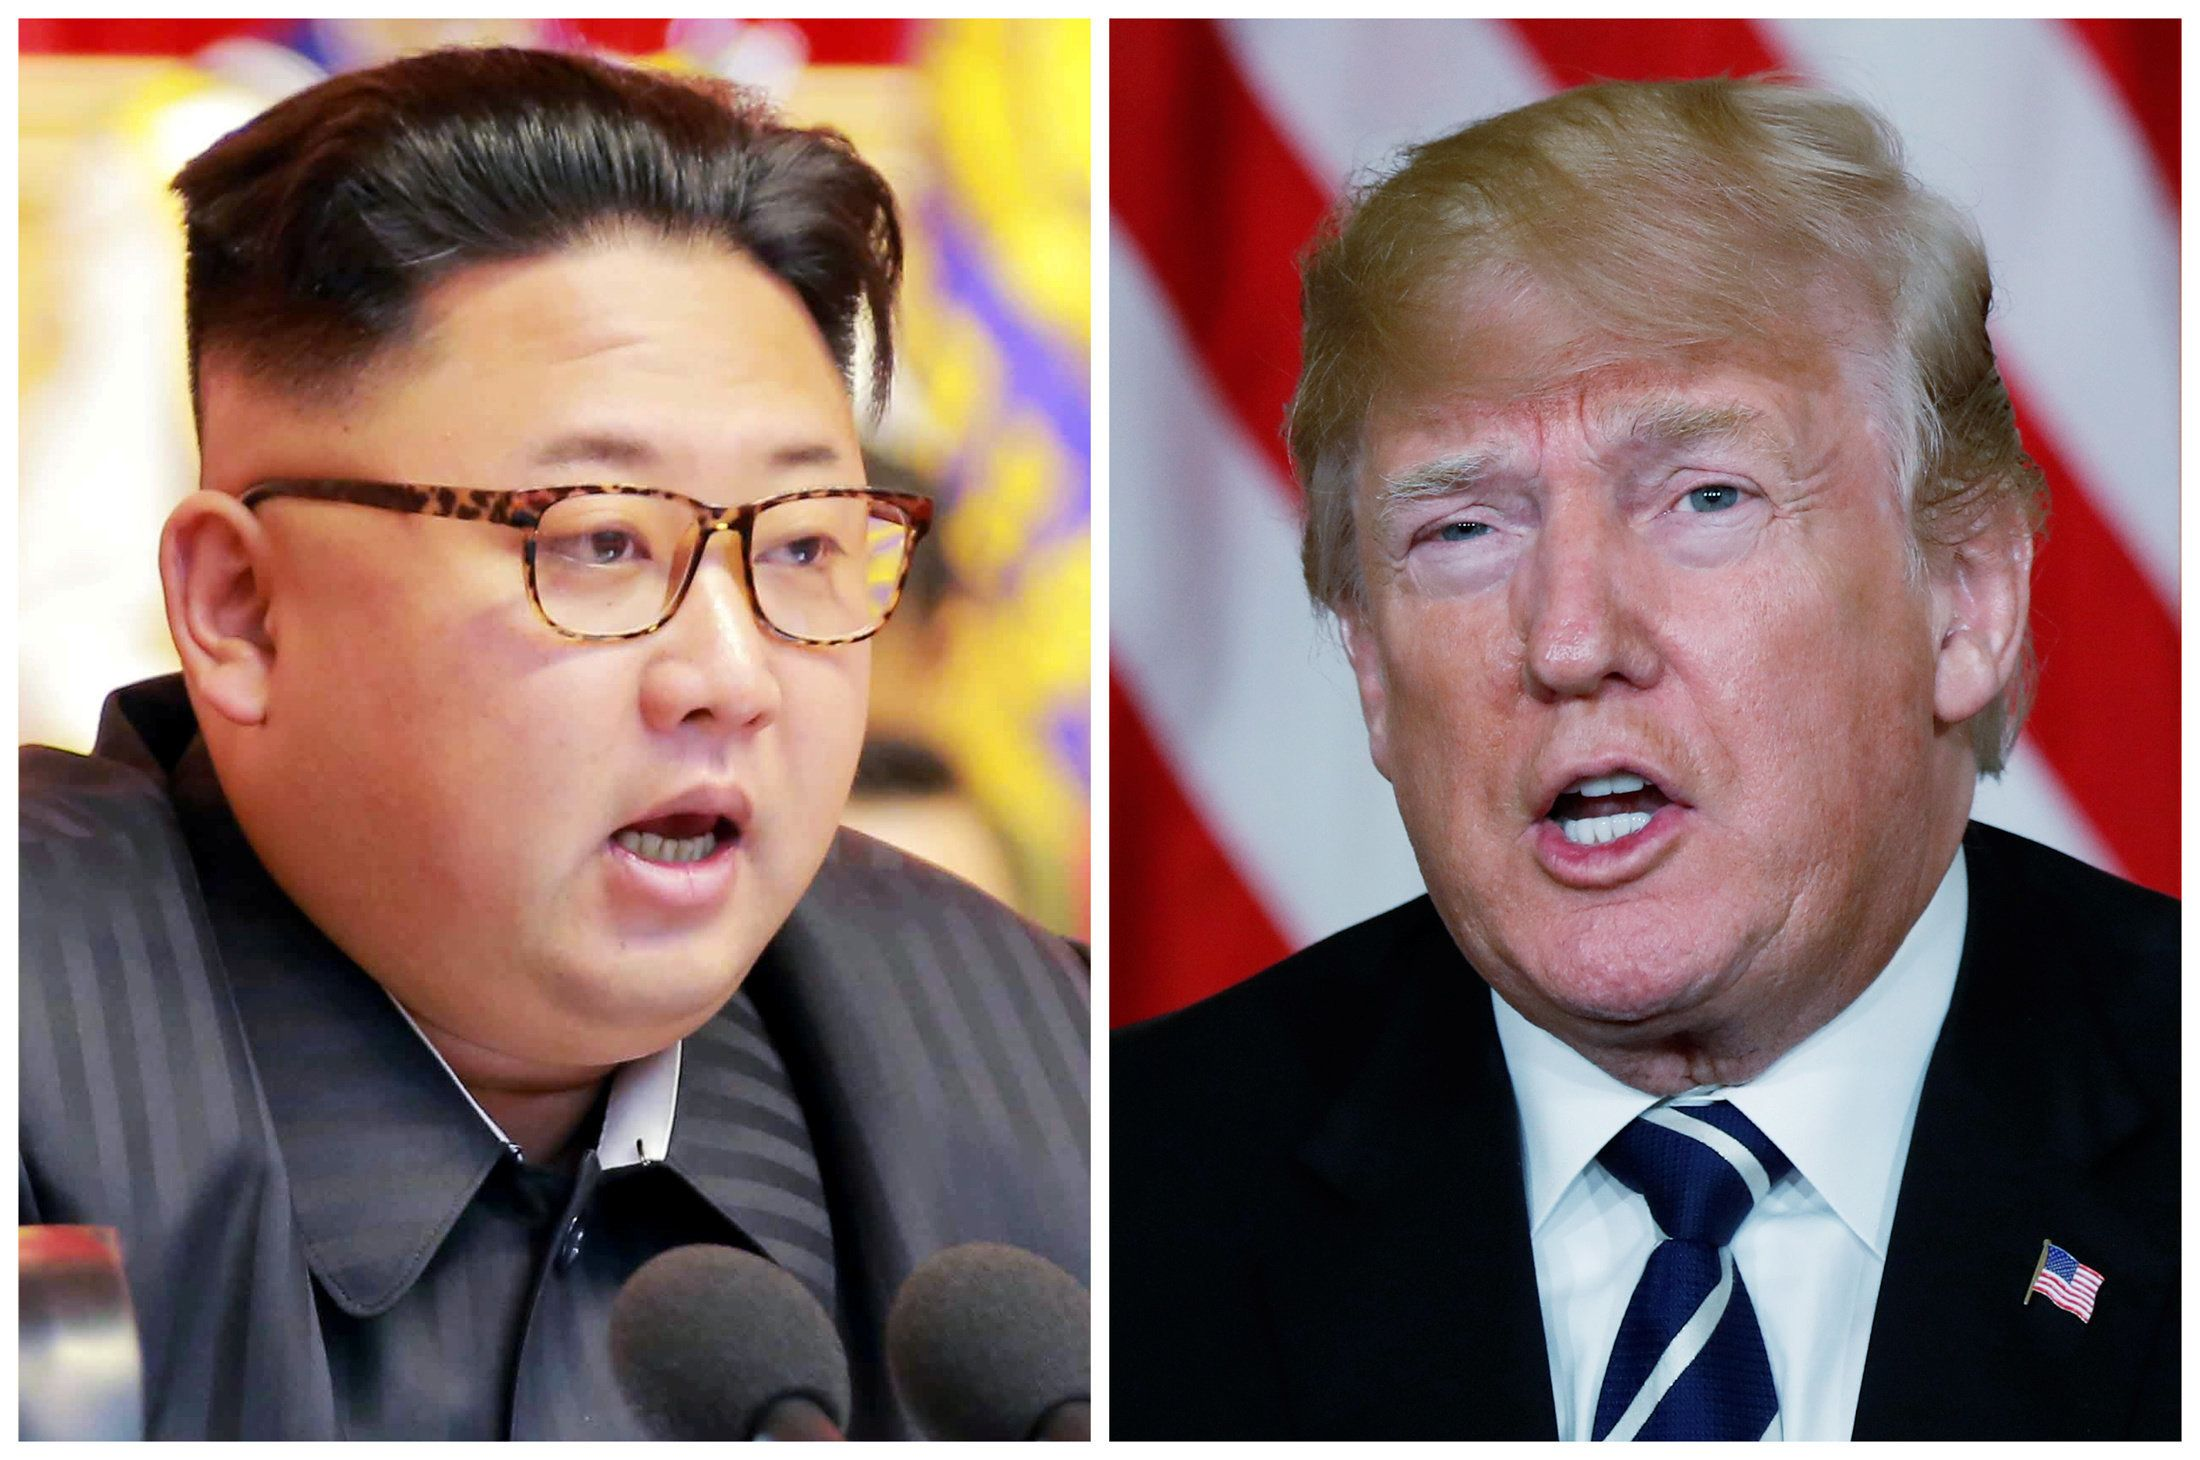 FILE PHOTO: A combination photo shows North Korean leader Kim Jong Un (L) in Pyongyang, North Korea and U.S. President Donald Trump (R), in Palm Beach, Florida, U.S., respectively from Reuters files.   REUTERS/KCNA handout via Reuters & Kevin Lamarque (R)    ATTENTION EDITORS - THIS PICTURE WAS PROVIDED BY A THIRD PARTY. REUTERS IS UNABLE TO INDEPENDENTLY VERIFY THE AUTHENTICITY, CONTENT, LOCATION OR DATE OF THIS IMAGE. FOR EDITORIAL USE ONLY. NOT FOR SALE FOR MARKETING OR ADVERTISING CAMPAIGNS. NO THIRD PARTY SALES. NOT FOR USE BY REUTERS THIRD PARTY DISTRIBUTORS. SOUTH KOREA OUT. NO COMMERCIAL OR EDITORIAL SALES IN SOUTH KOREA.